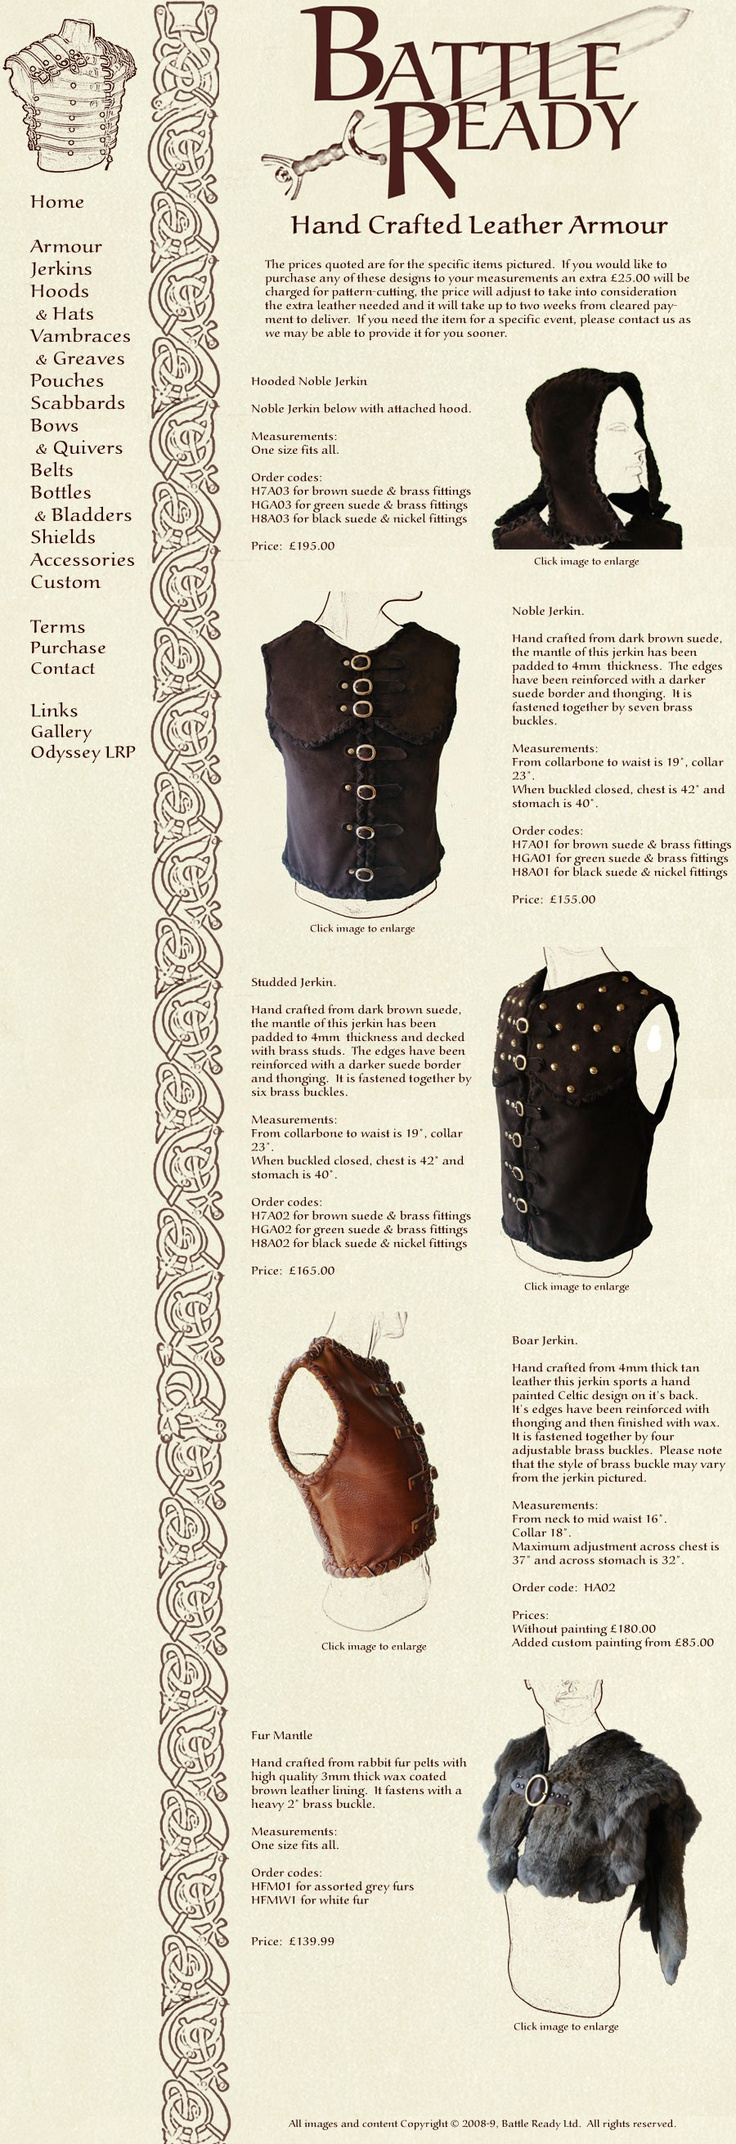 Drawn armor jerkin Images 152 Reference Clothes Pinterest